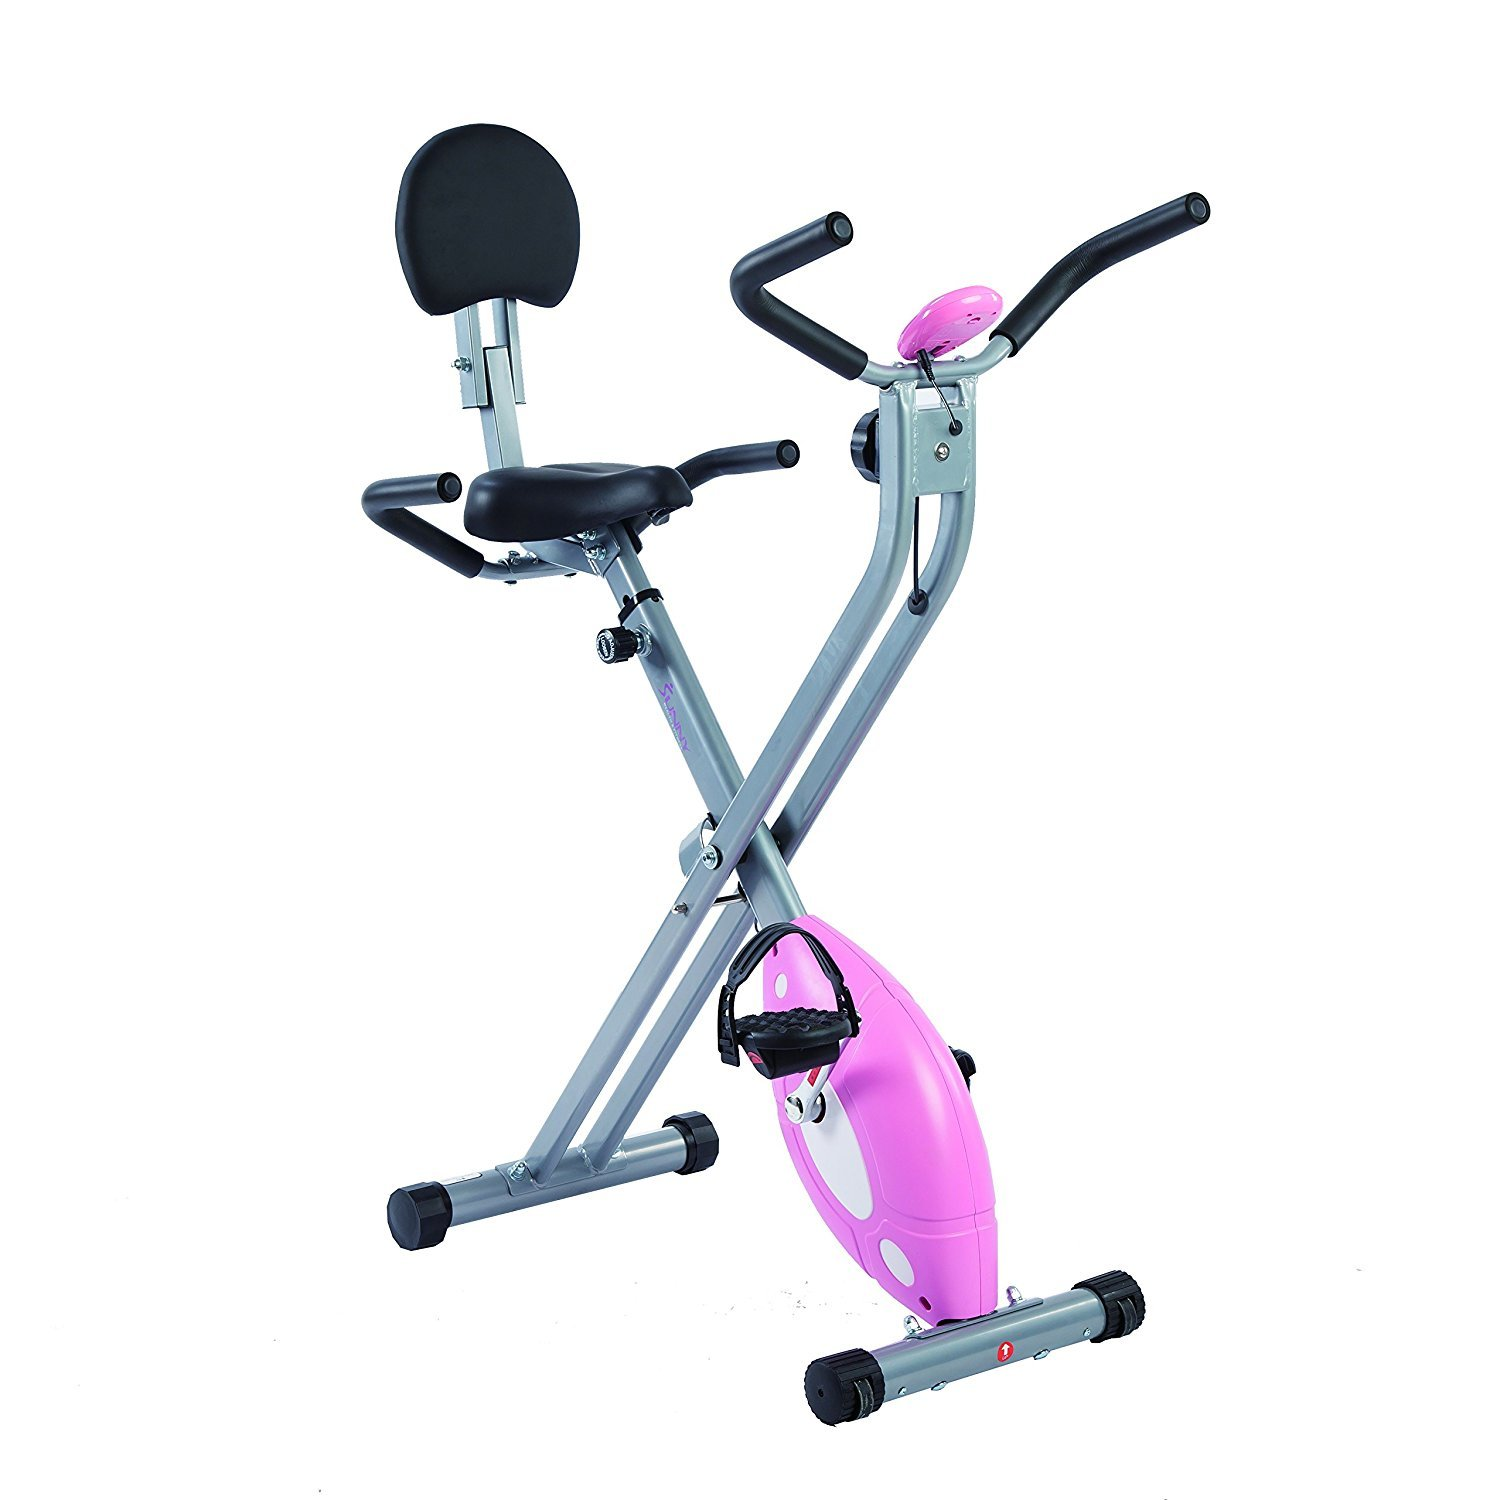 Sunny Health & Fitness Folding Recumbent Bike is pictured here